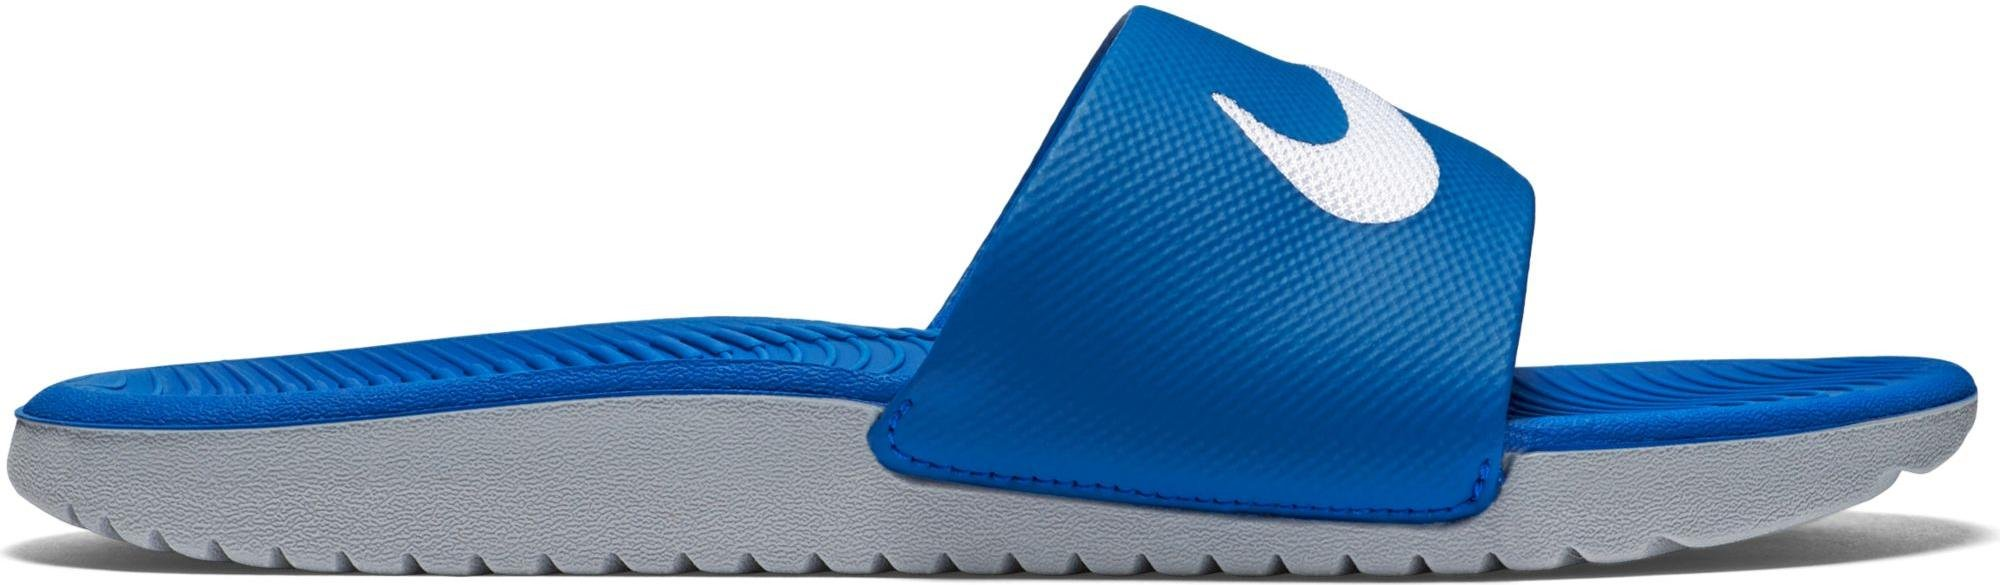 Badeslipper Nike KAWA SLIDE (GS/PS)